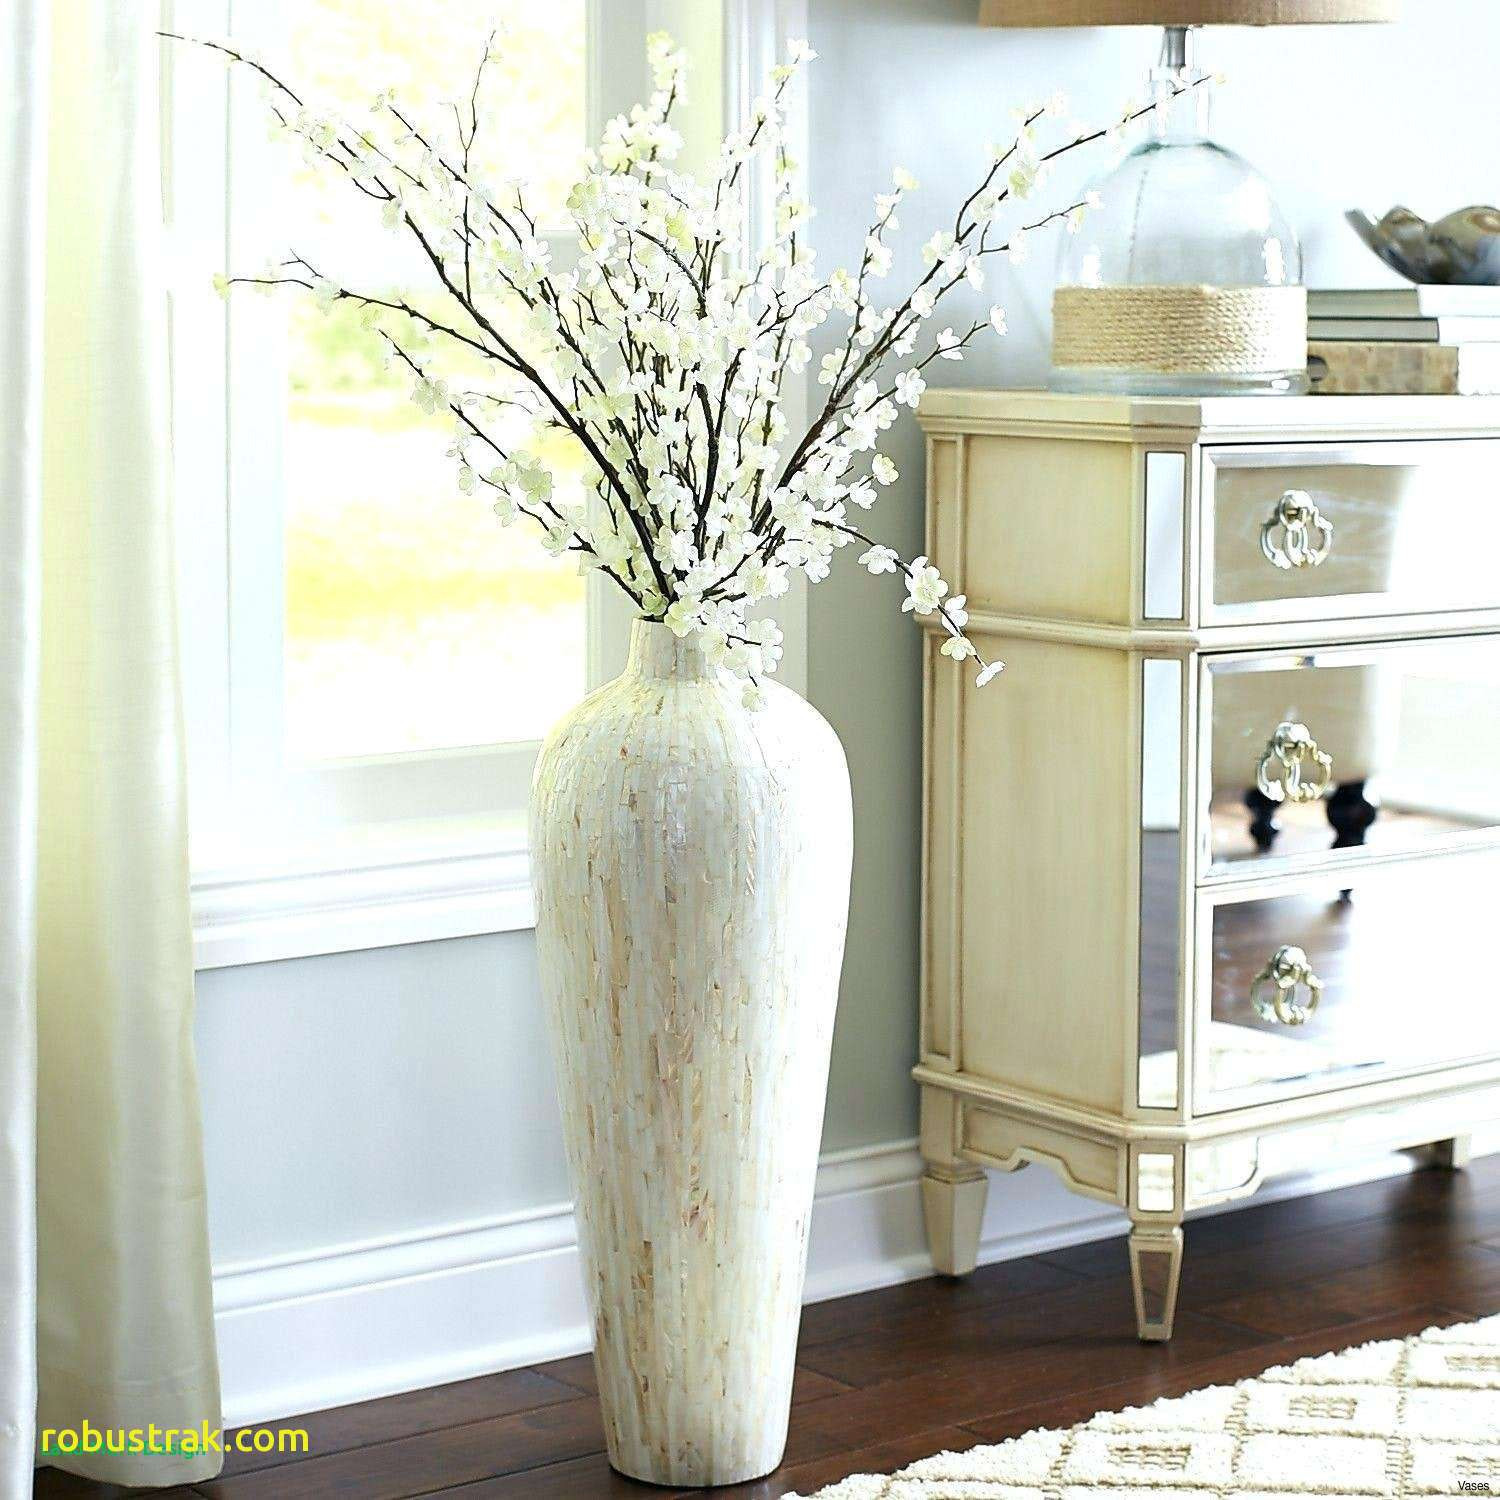 Tall Floor Vase Fillers Of 20 Elegant Large Floor Vase Decoration Ideas Bogekompresorturkiye Com with Regard to Tall Floor Vaseh Vases Extra Large Vase Vasei 0d Tall Vase with Branches